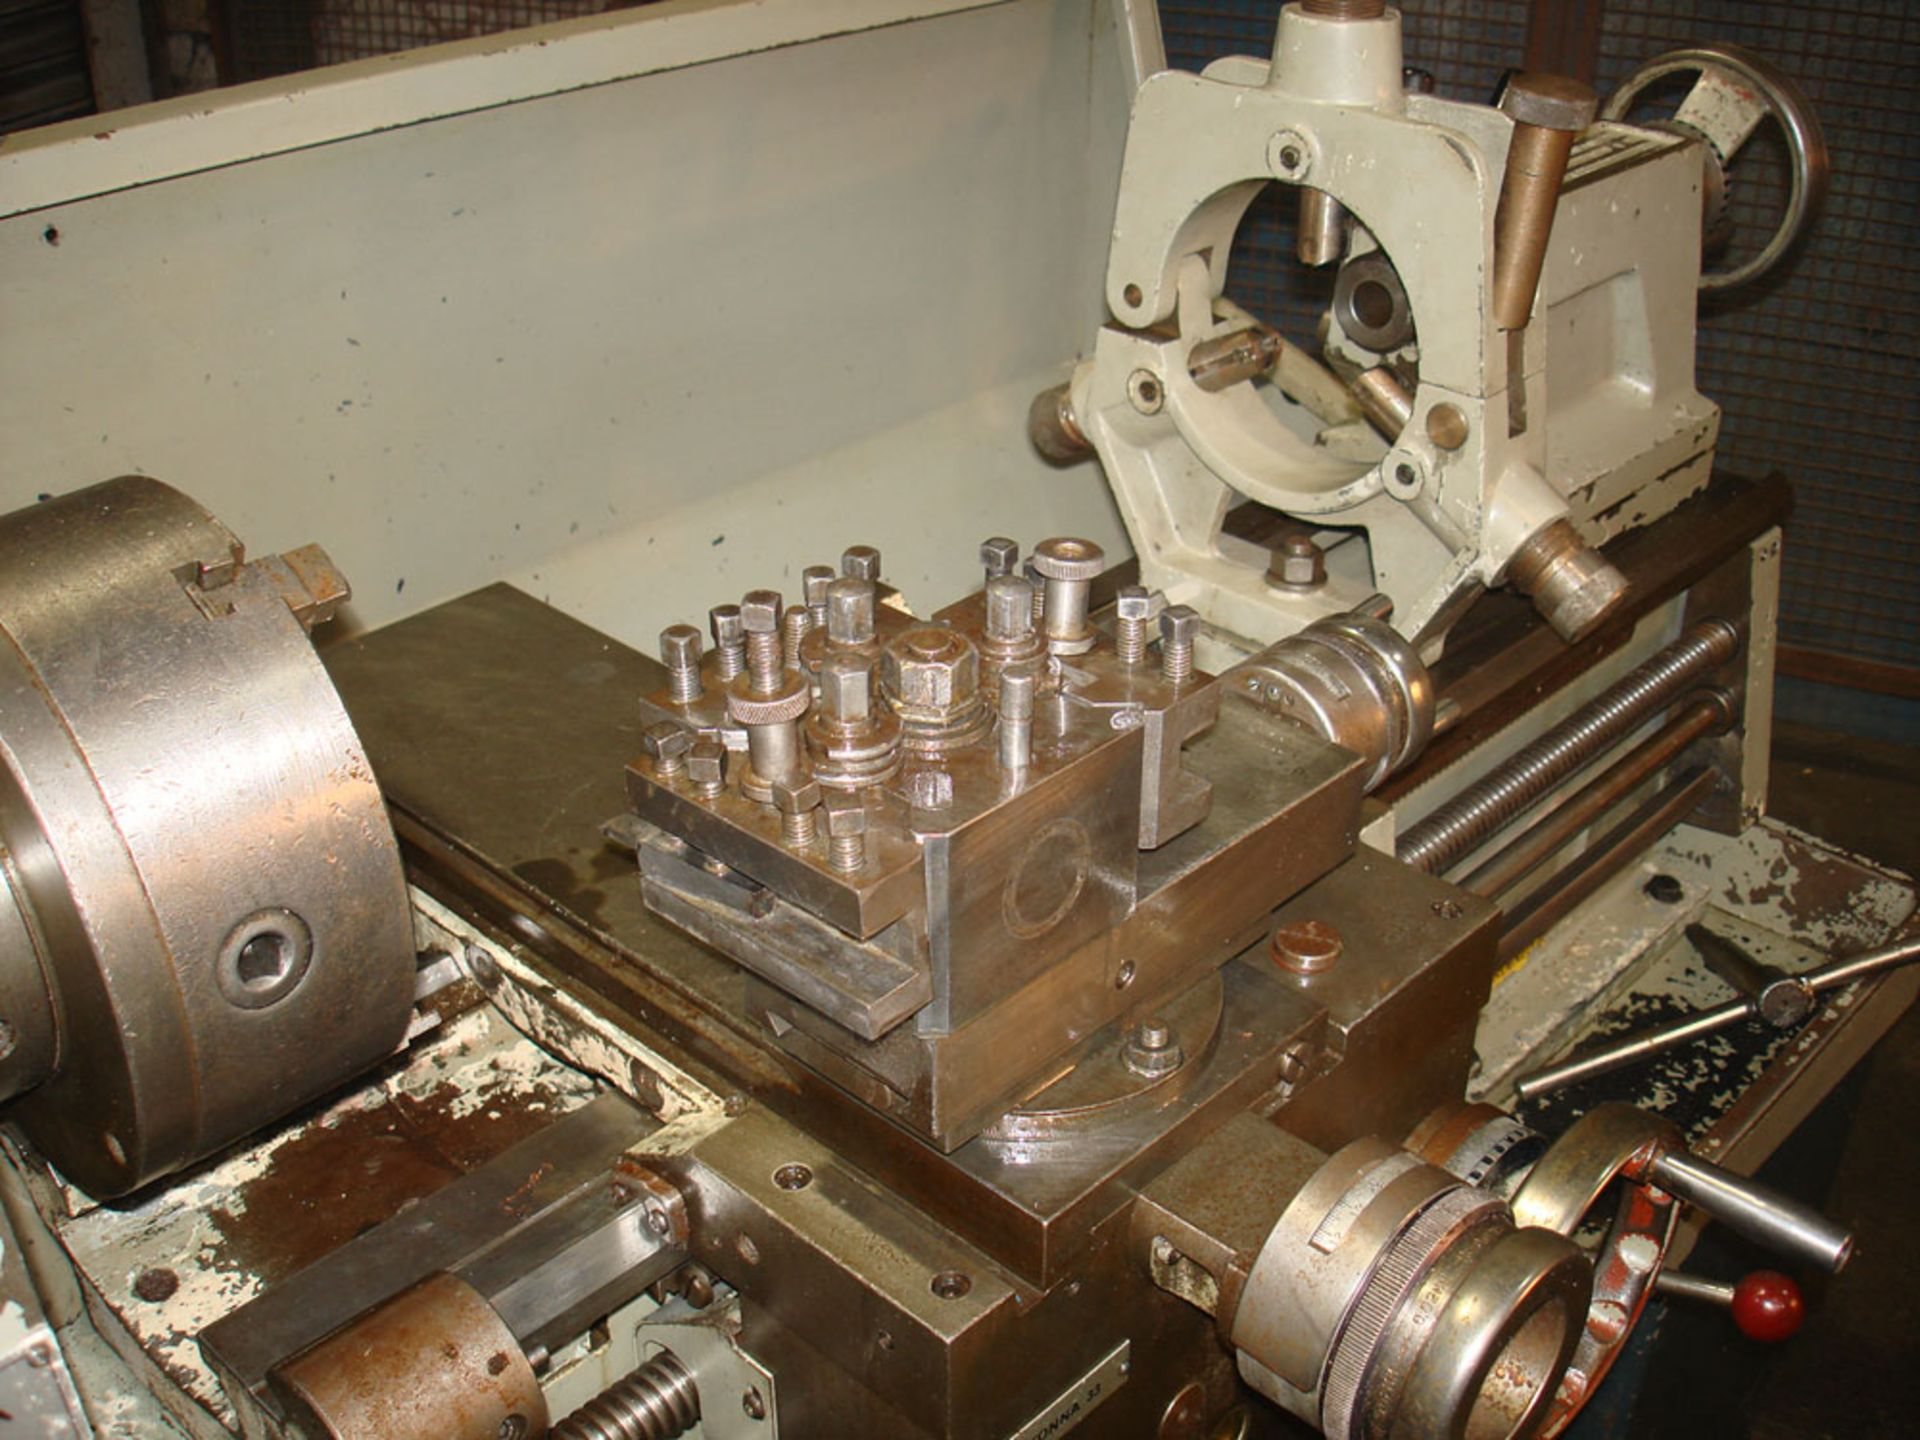 Colchester Master 2500 Gap Bed Centre Lathe. Swing 335mm x 635mm. With Chuck & Steady. - Image 4 of 5